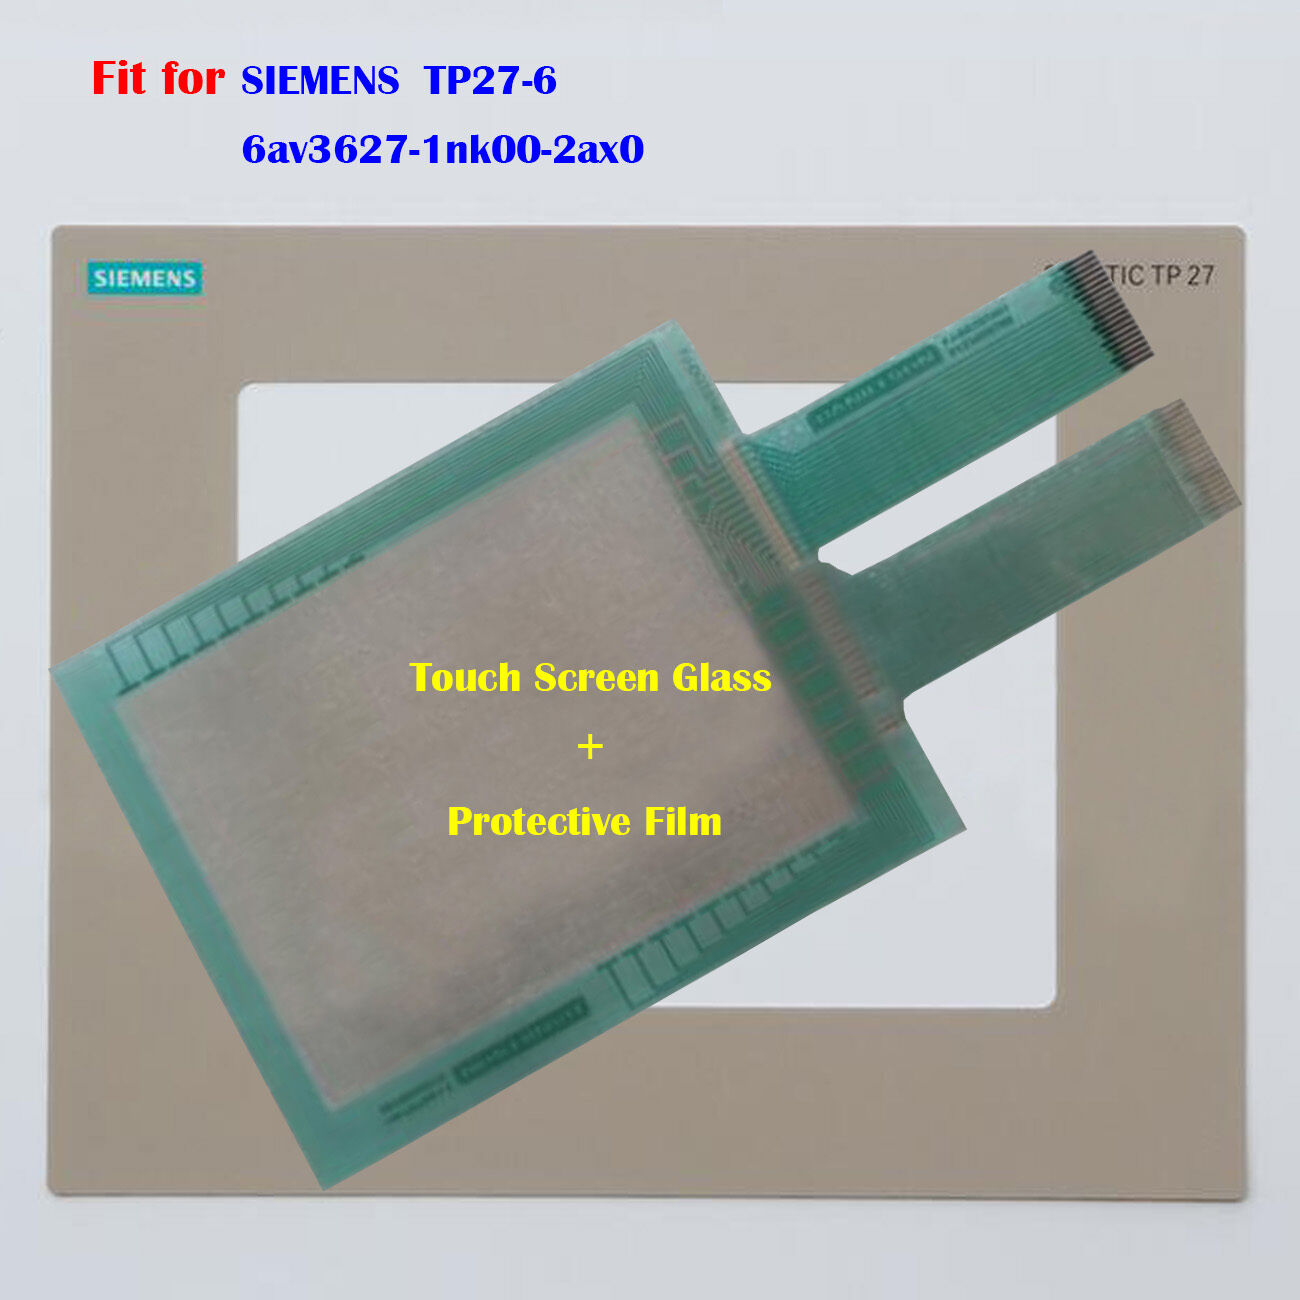 New For SIEMENS TP27-6 6av3627-1nk00-2ax0 Touch Panel Glass + Predective Film